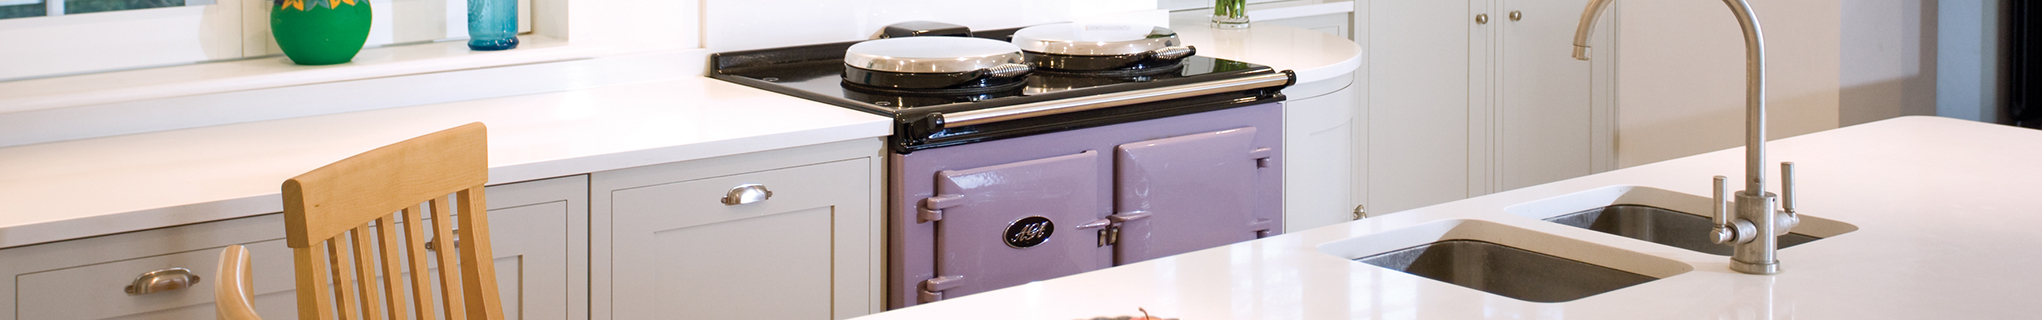 AGA Dual Control in Heather